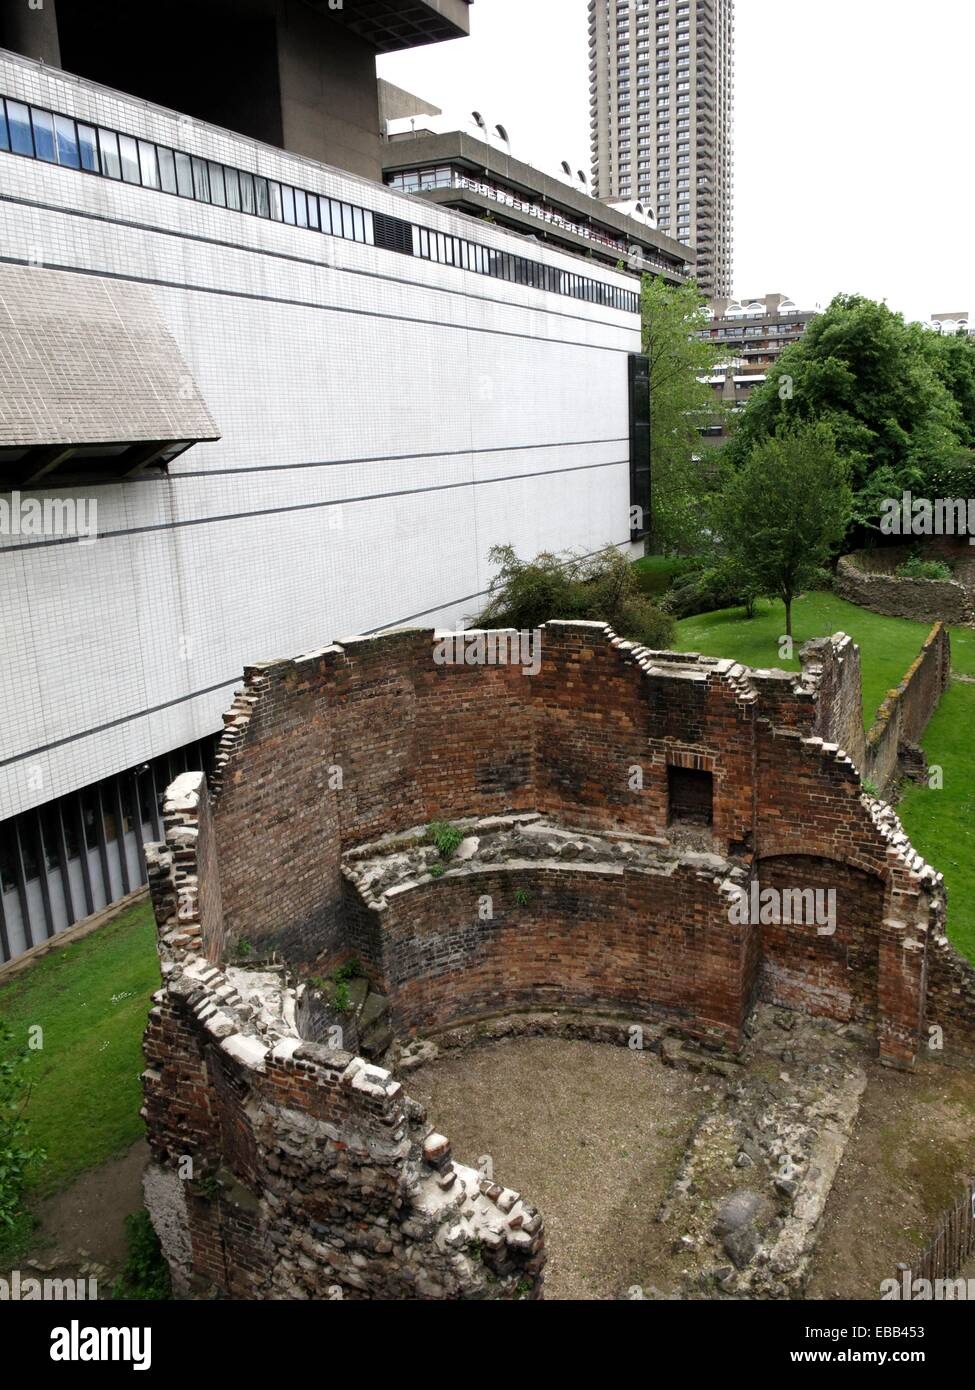 Ruins of rectangular fort built by Romans in AD 100-120  City of Westminster London city  England  Uited Kingdom. - Stock Image